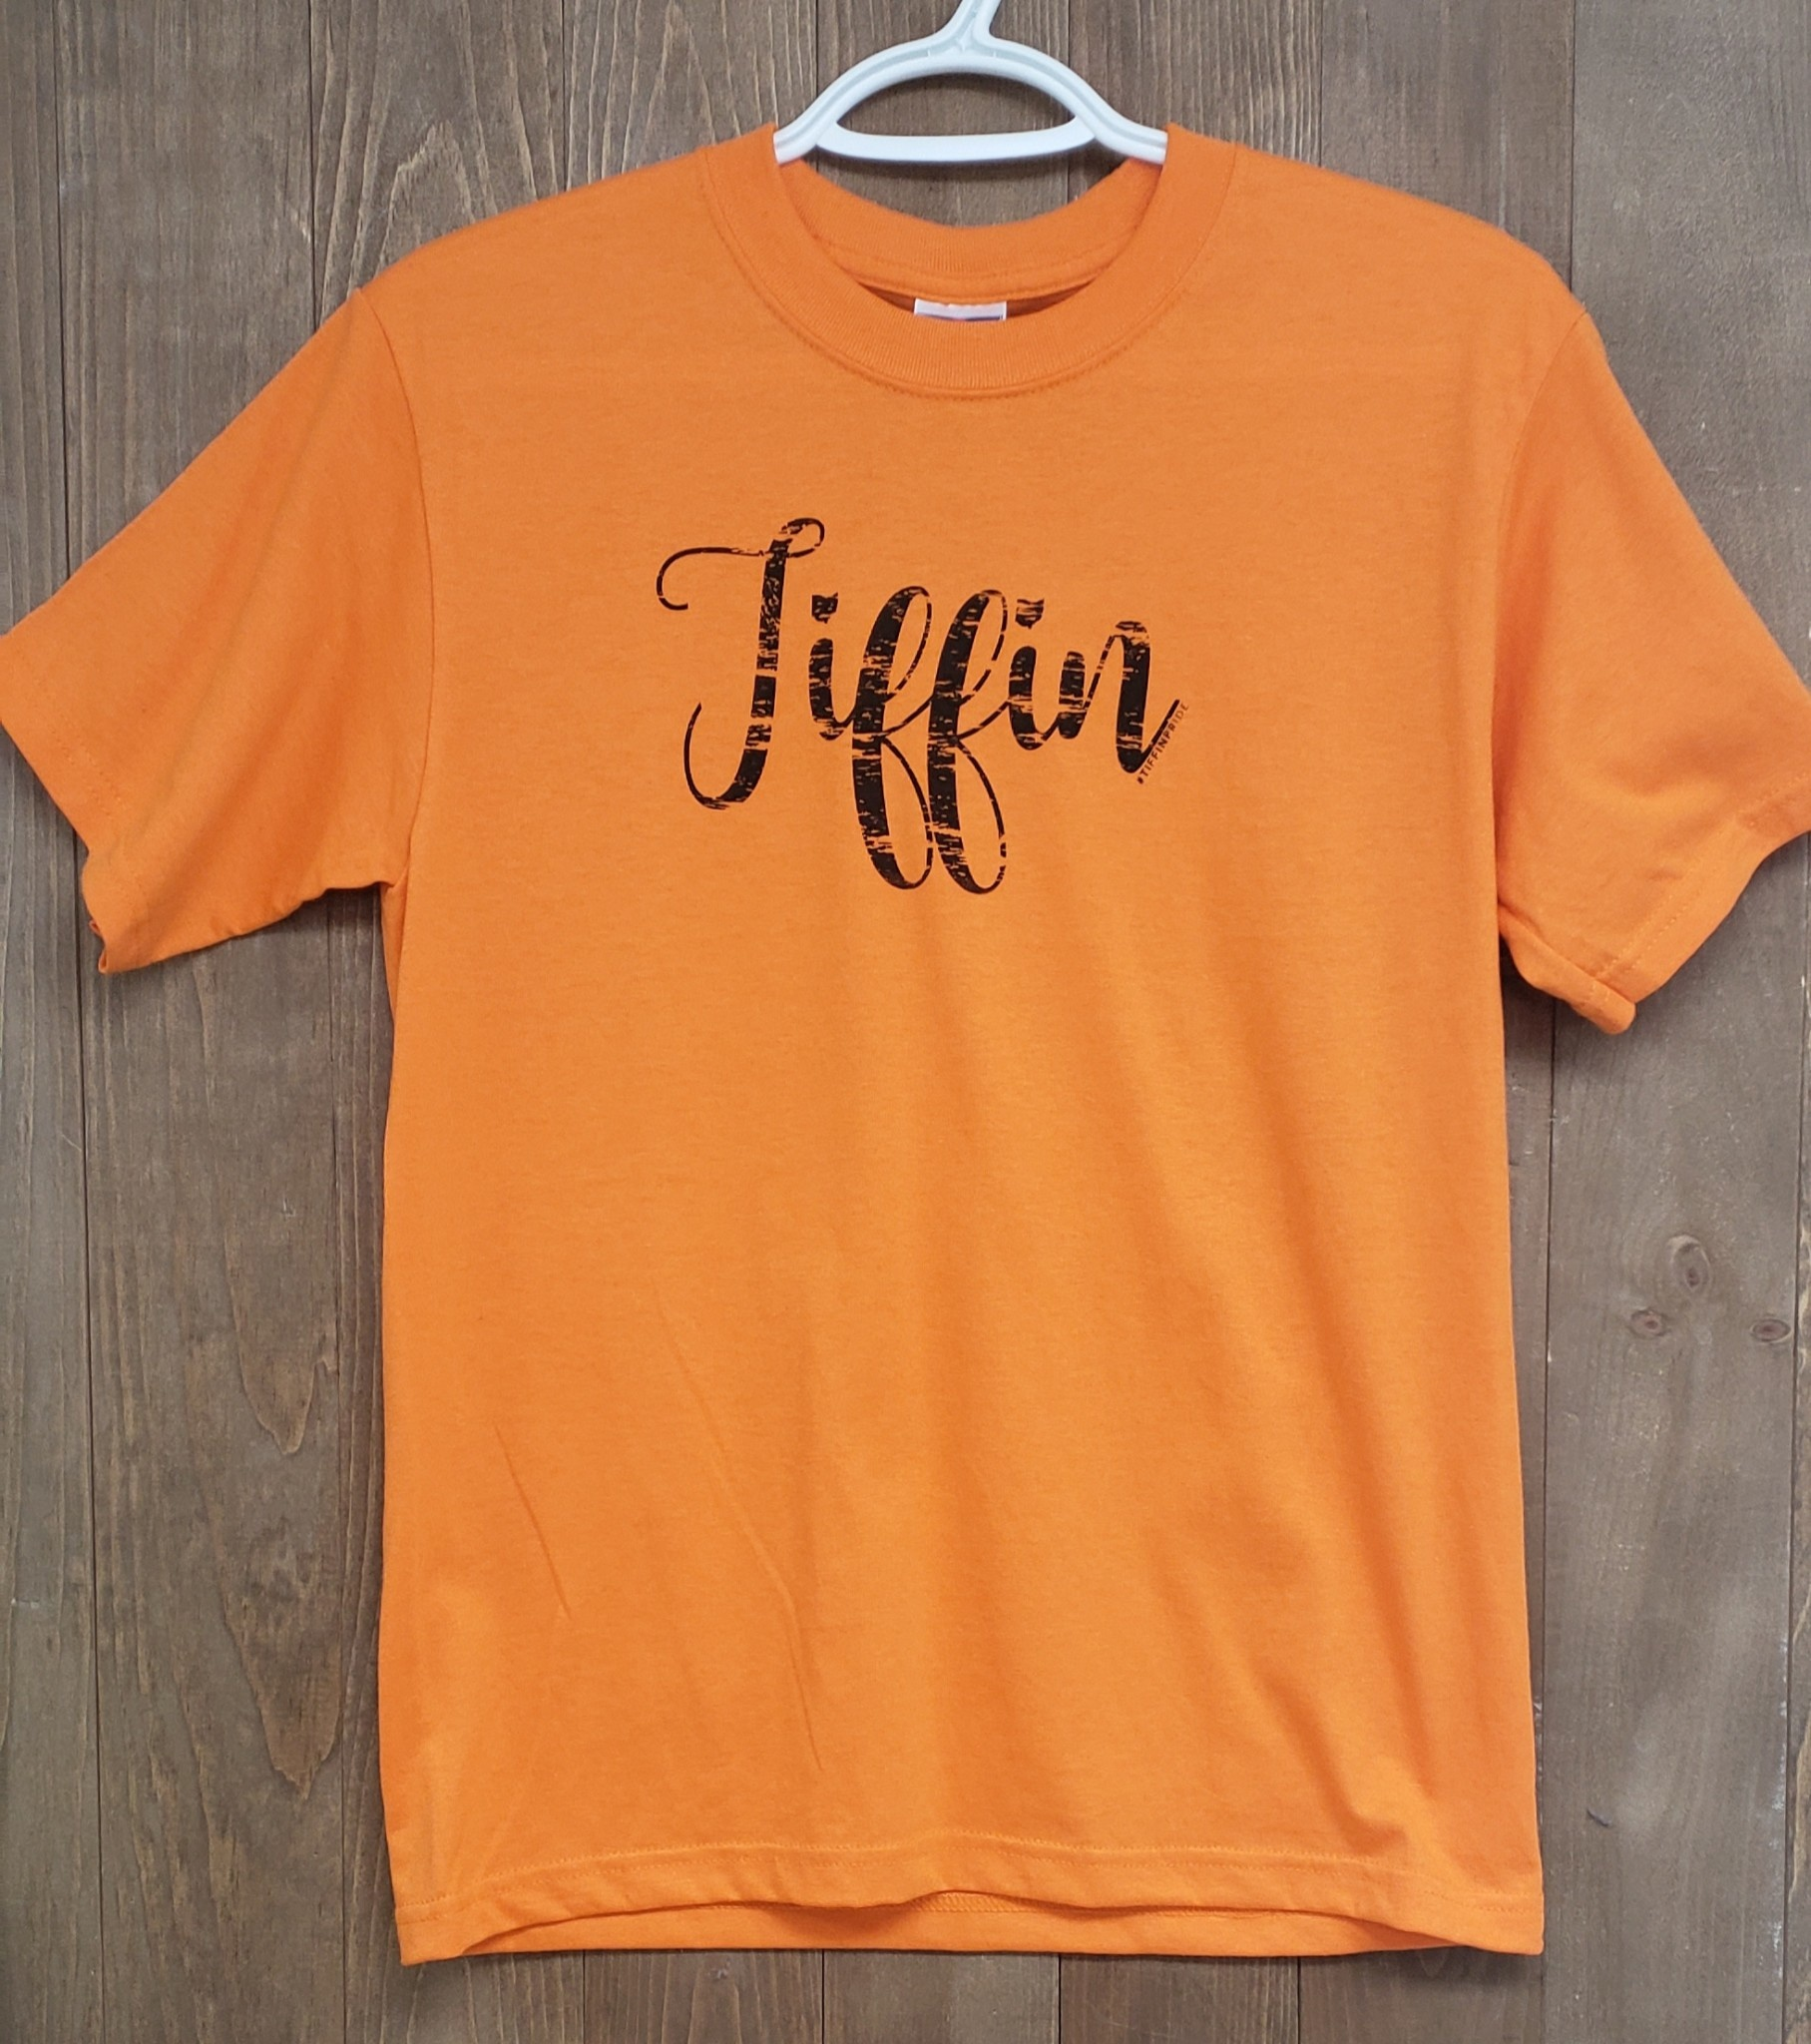 Kids Crew Neck Tee w/ Black Tiffin Script